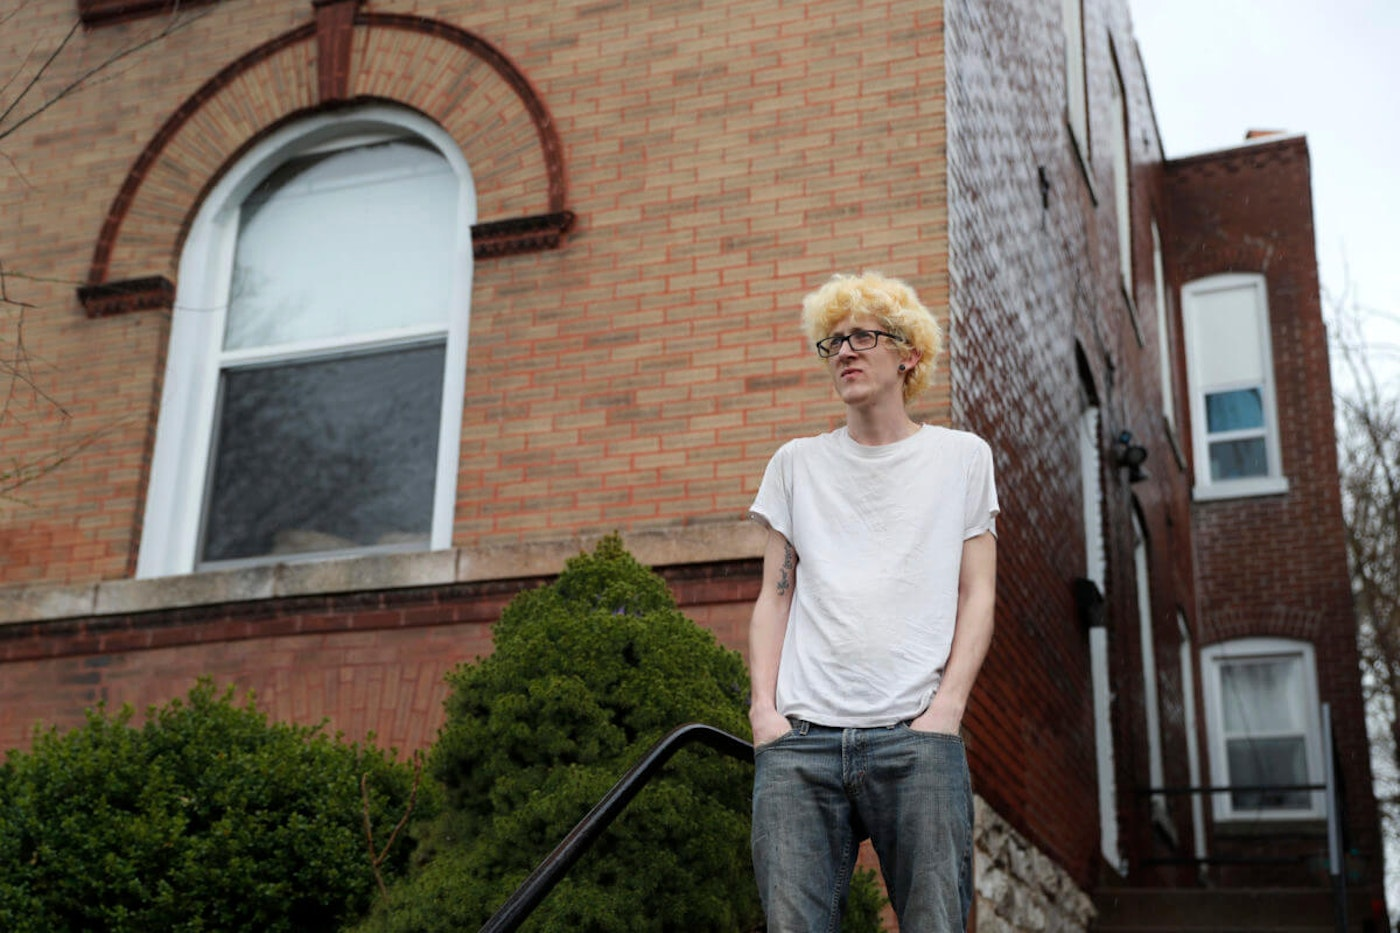 Kyle Kofron poses for a photo outside his home in St. Louis. Kofron is advocating for a rent strike during the outbreak. (AP Photo/Jeff Roberson)